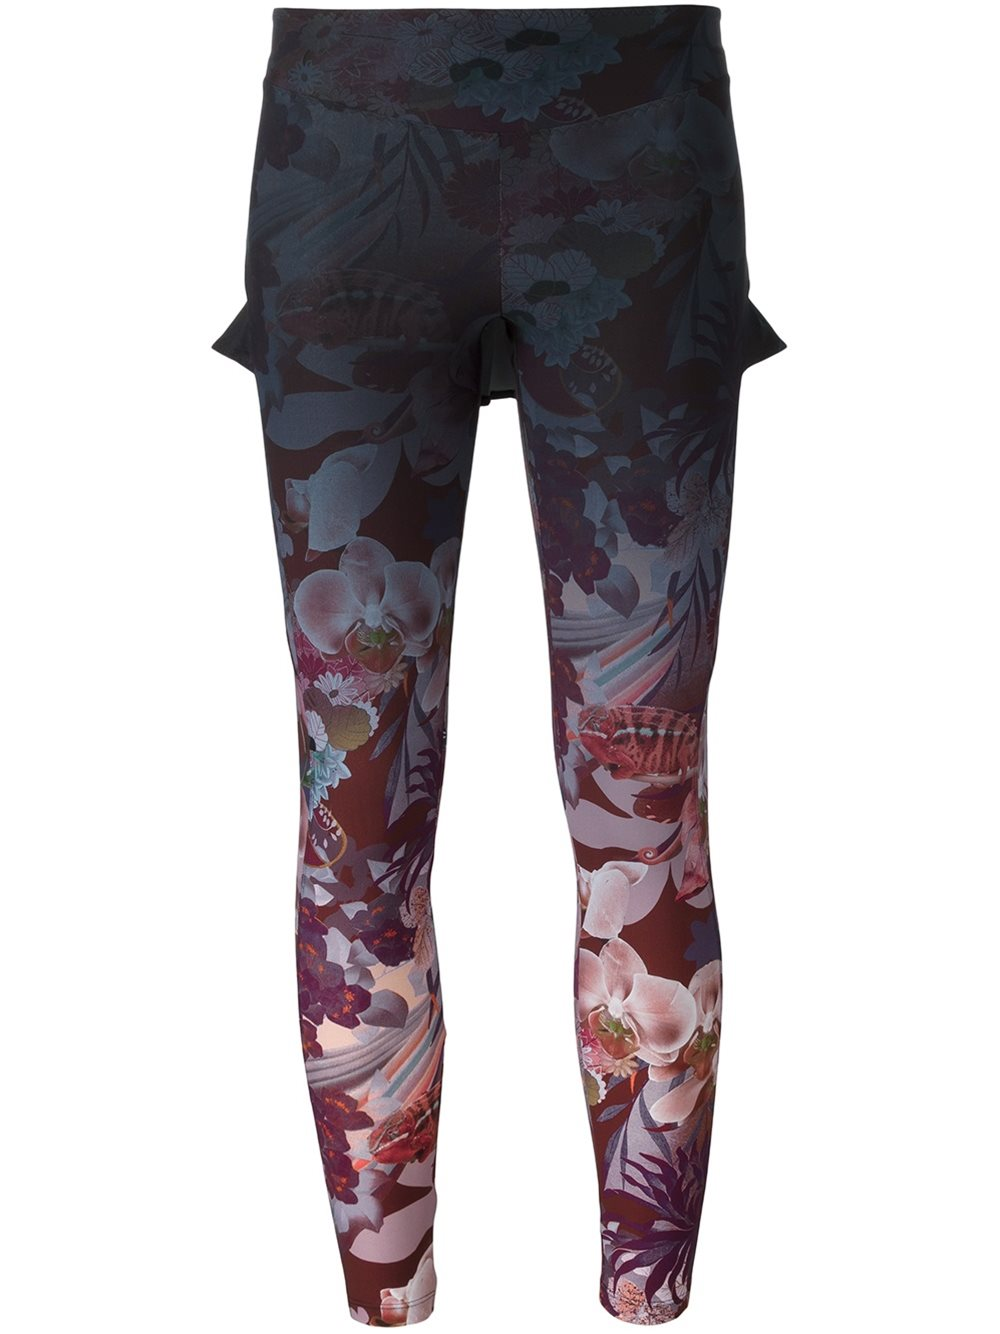 SAPOPA LEGGINGS